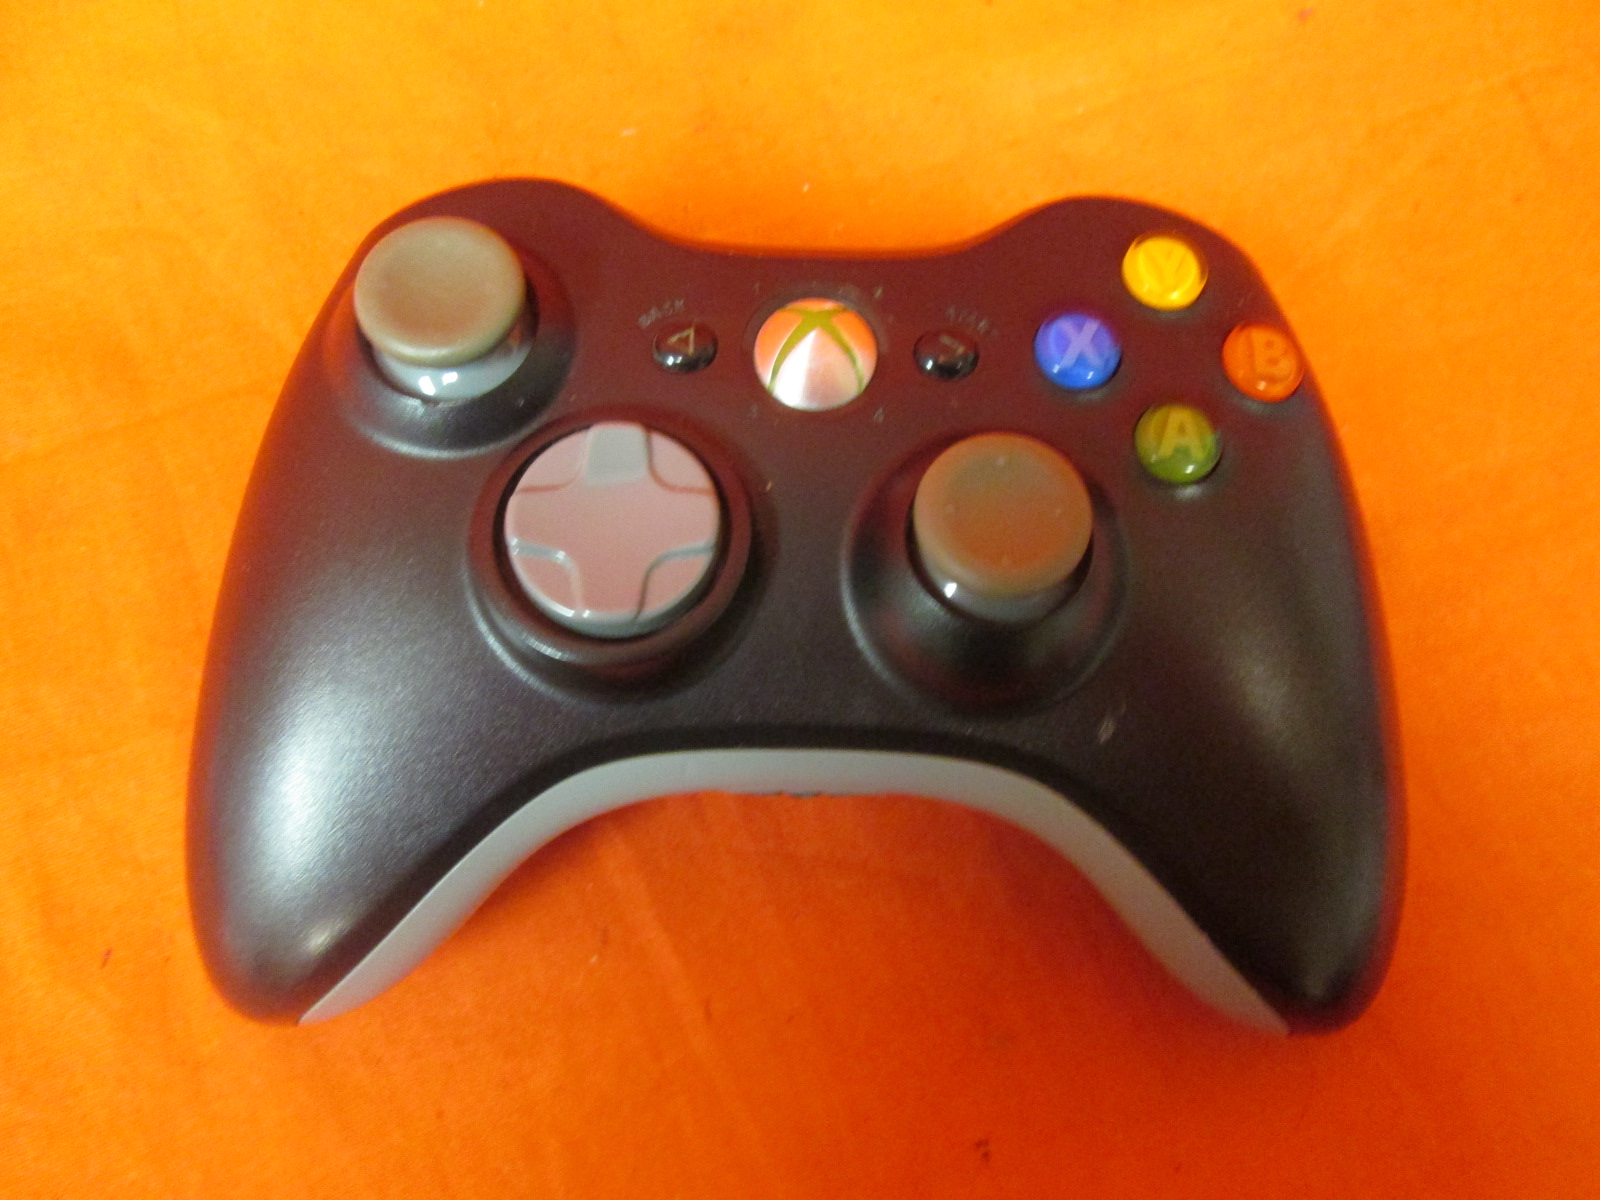 Authentic Official Wireless Controller Matte Black Microsoft Xbox 360